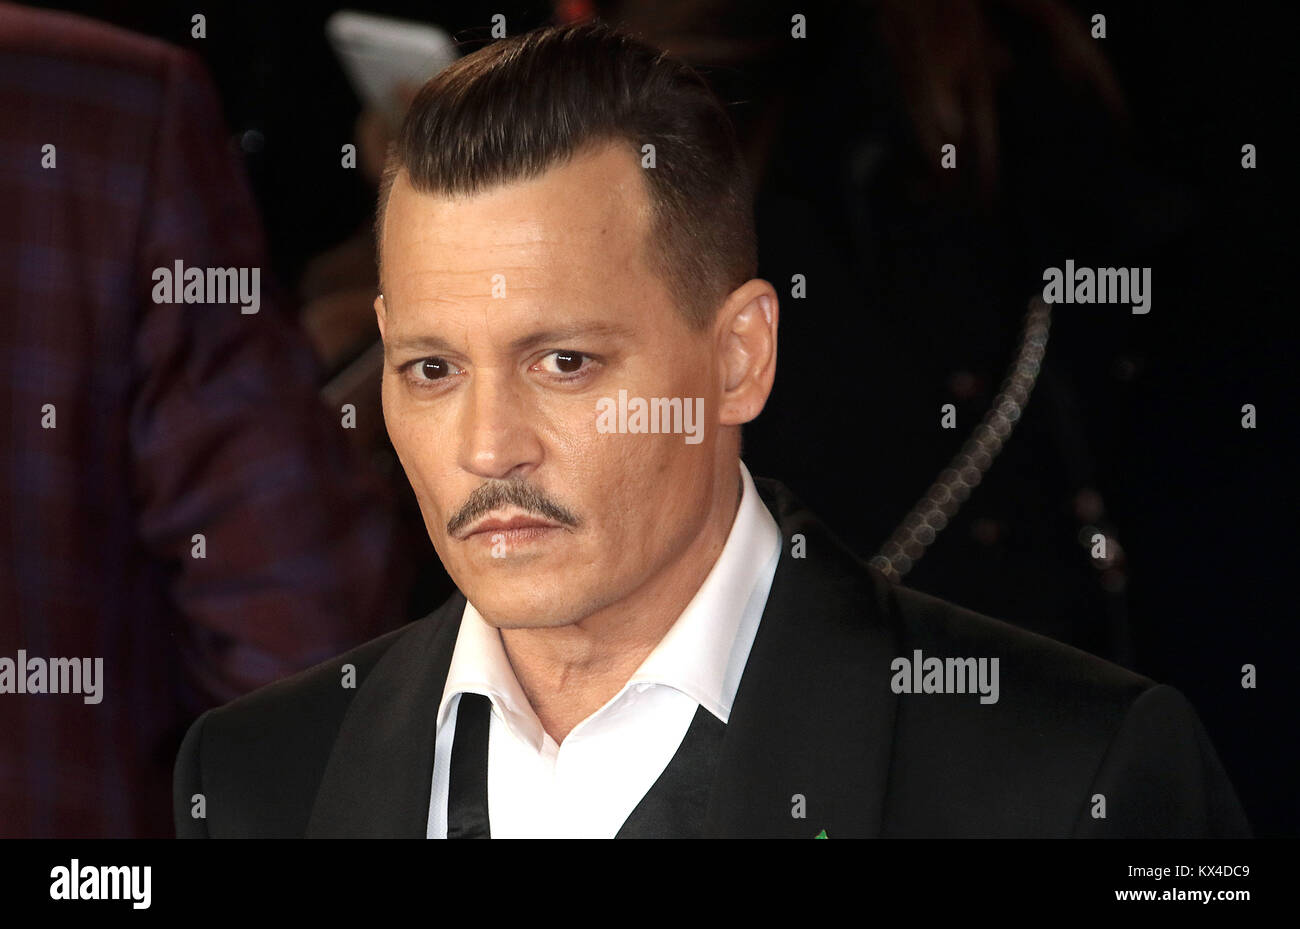 02.November 2017 - Johnny Depp an 'Murder Im Orient Express' Weltpremiere, der Royal Albert Hall in London, Stockbild